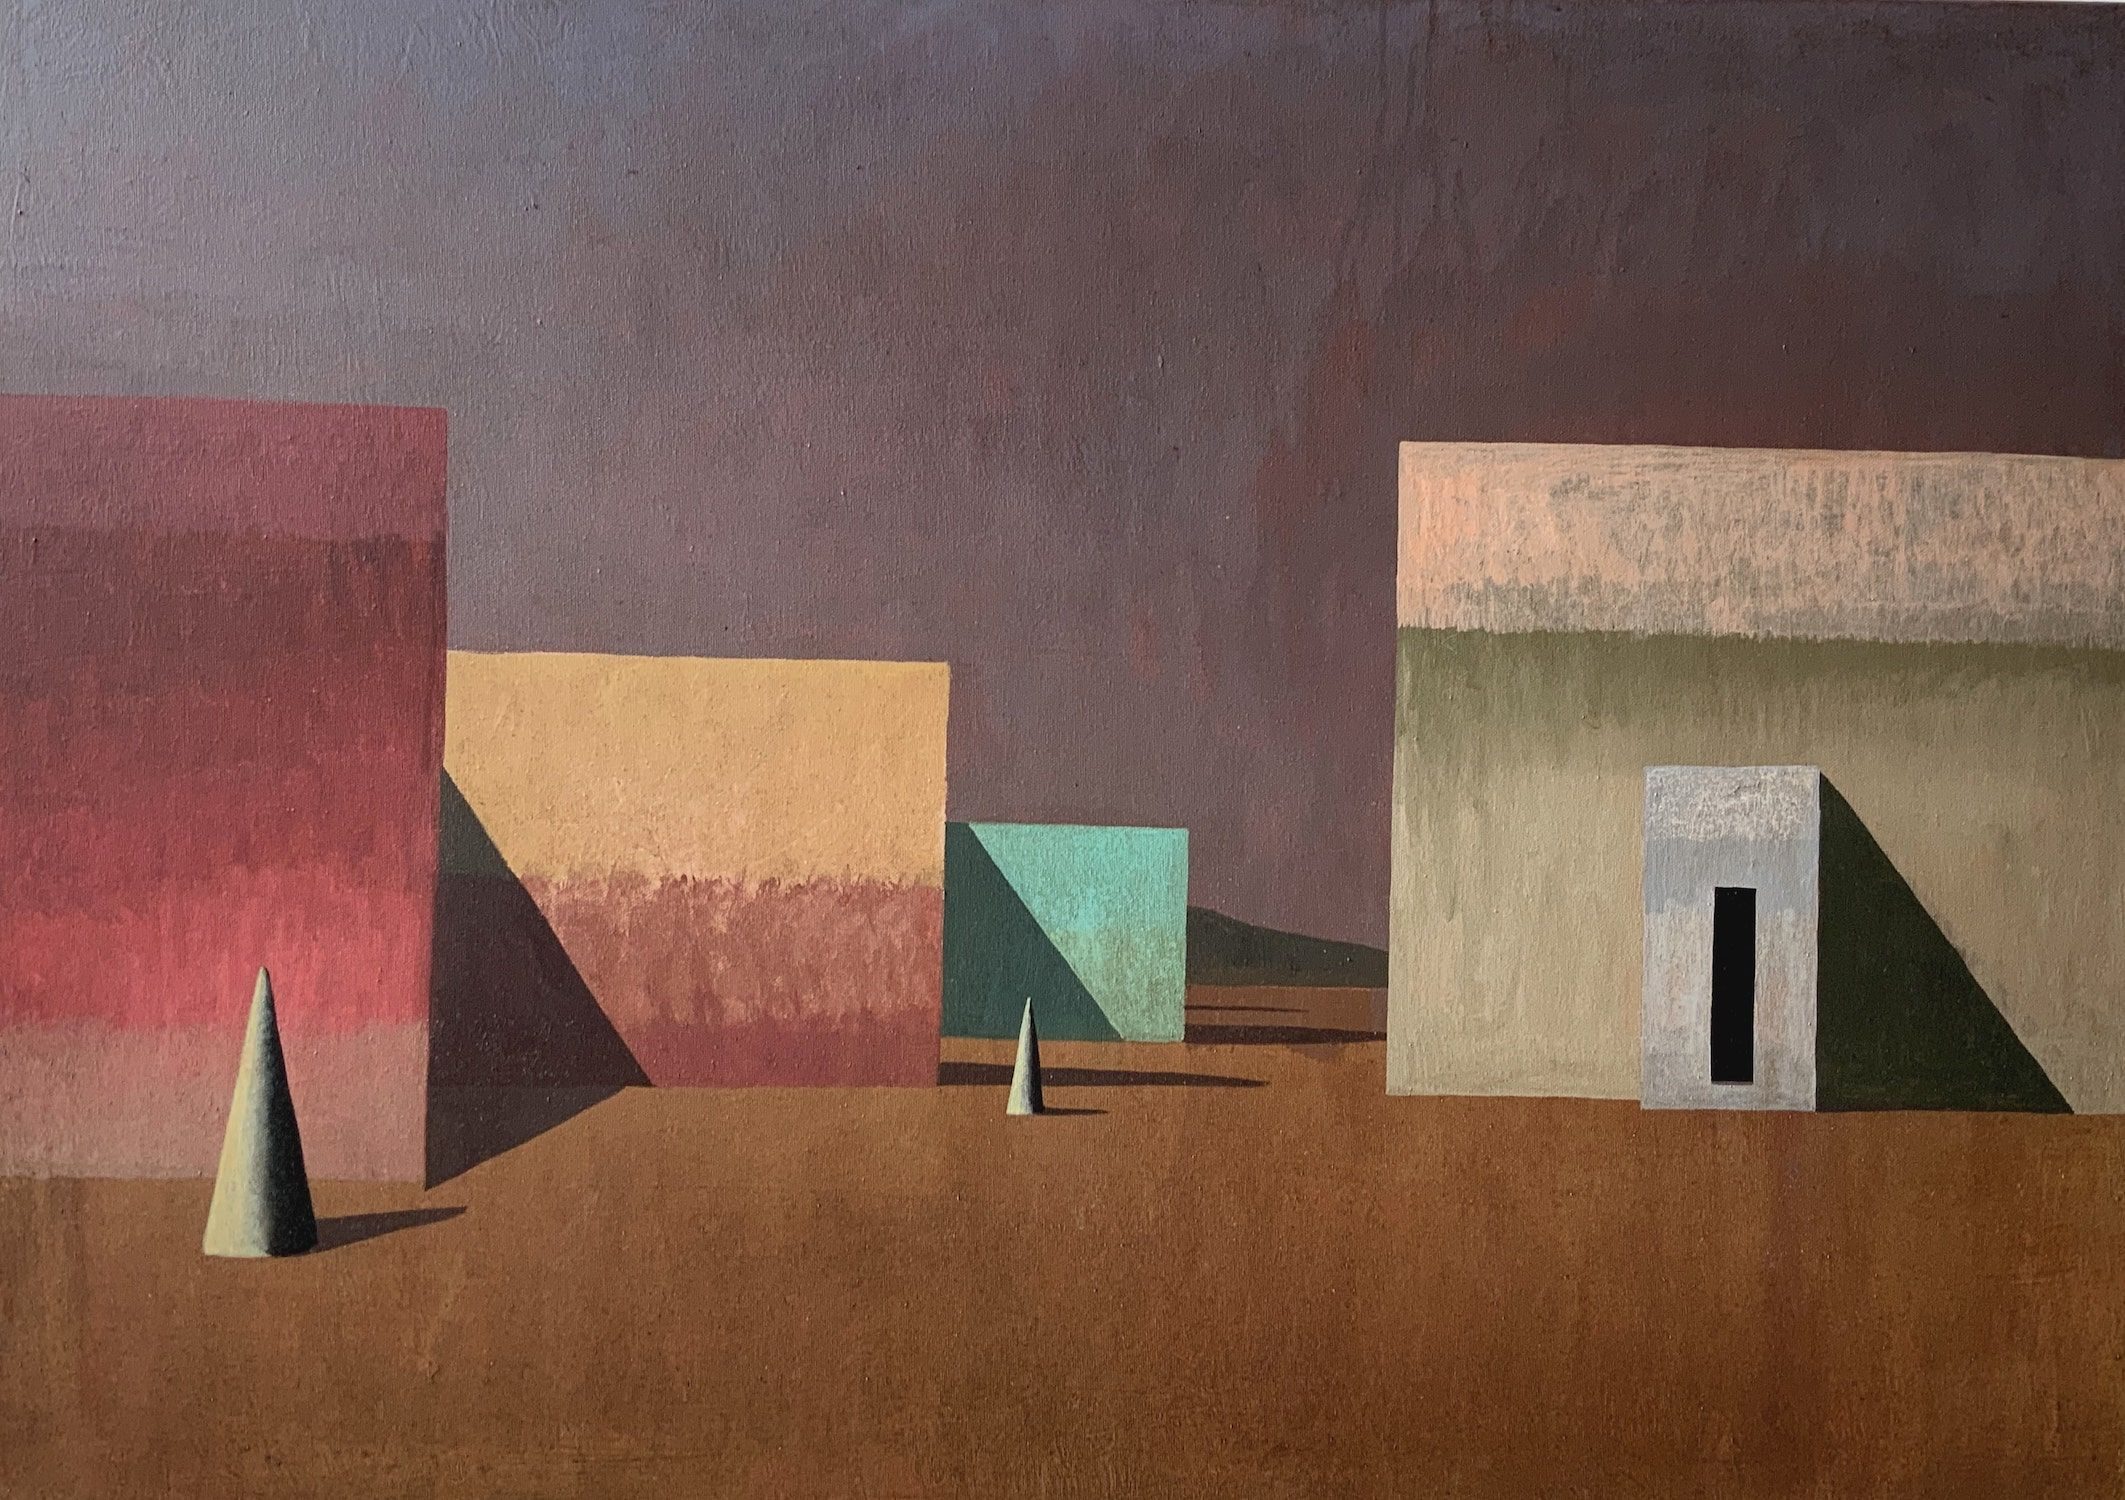 TOL,Ramon Enrich,Contemporary painting